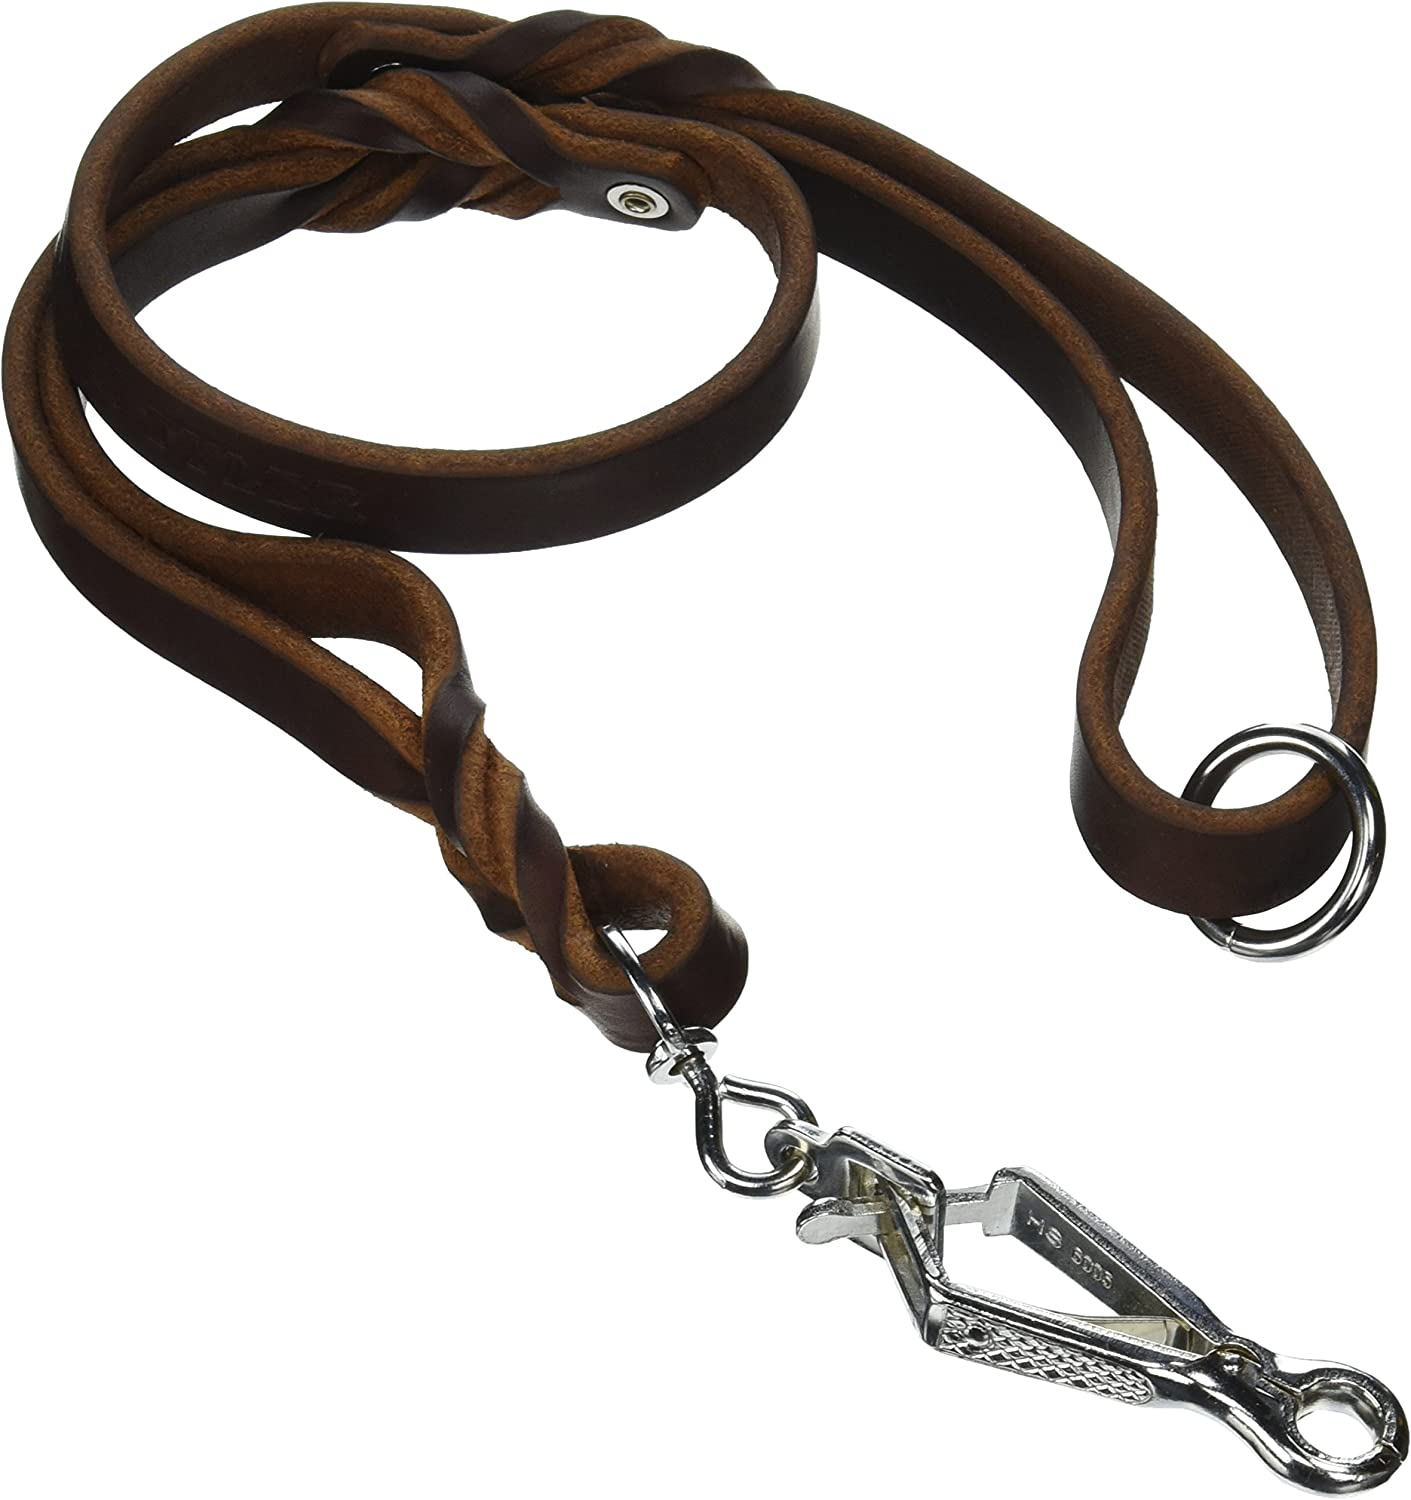 Dean & Tyler Braidy Bunch Dog Leash with Stainless Steel Ring on Handle and Herm Sprenger Snap Hook, 3Feet by 3 4Inch, Brown